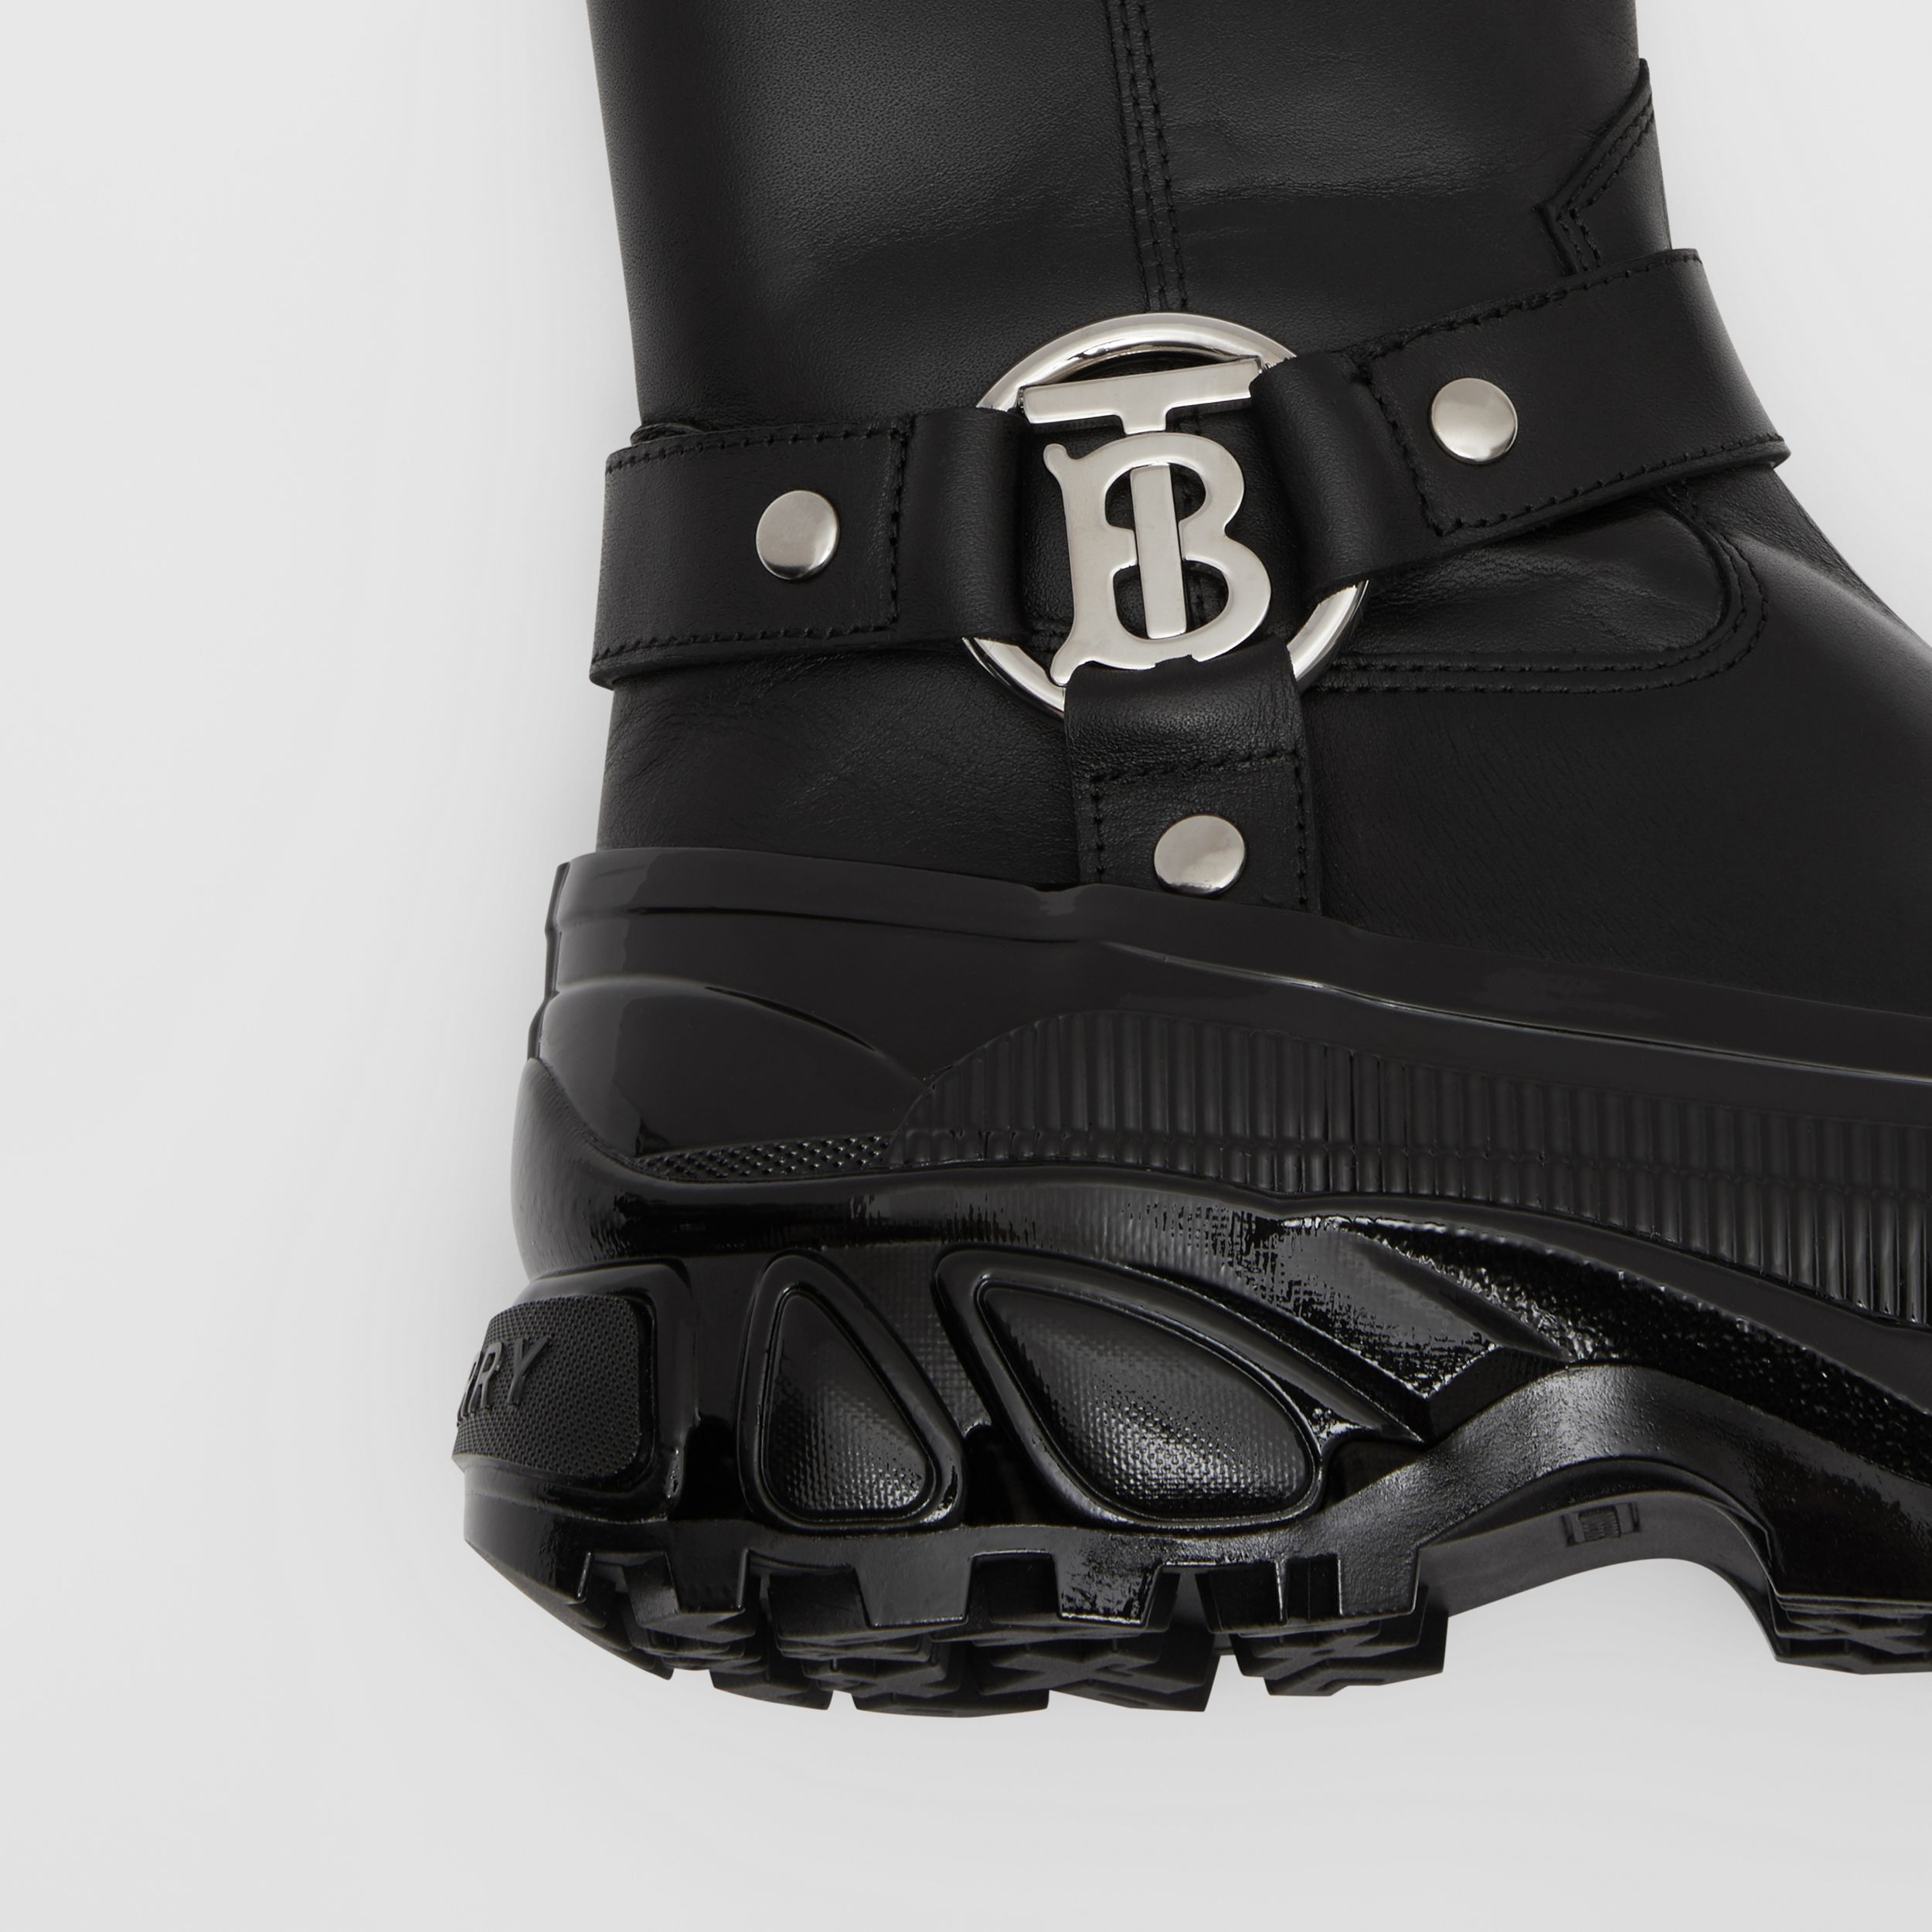 Monogram Motif Buckle Leather Boots in Black - Women | Burberry Australia - 2